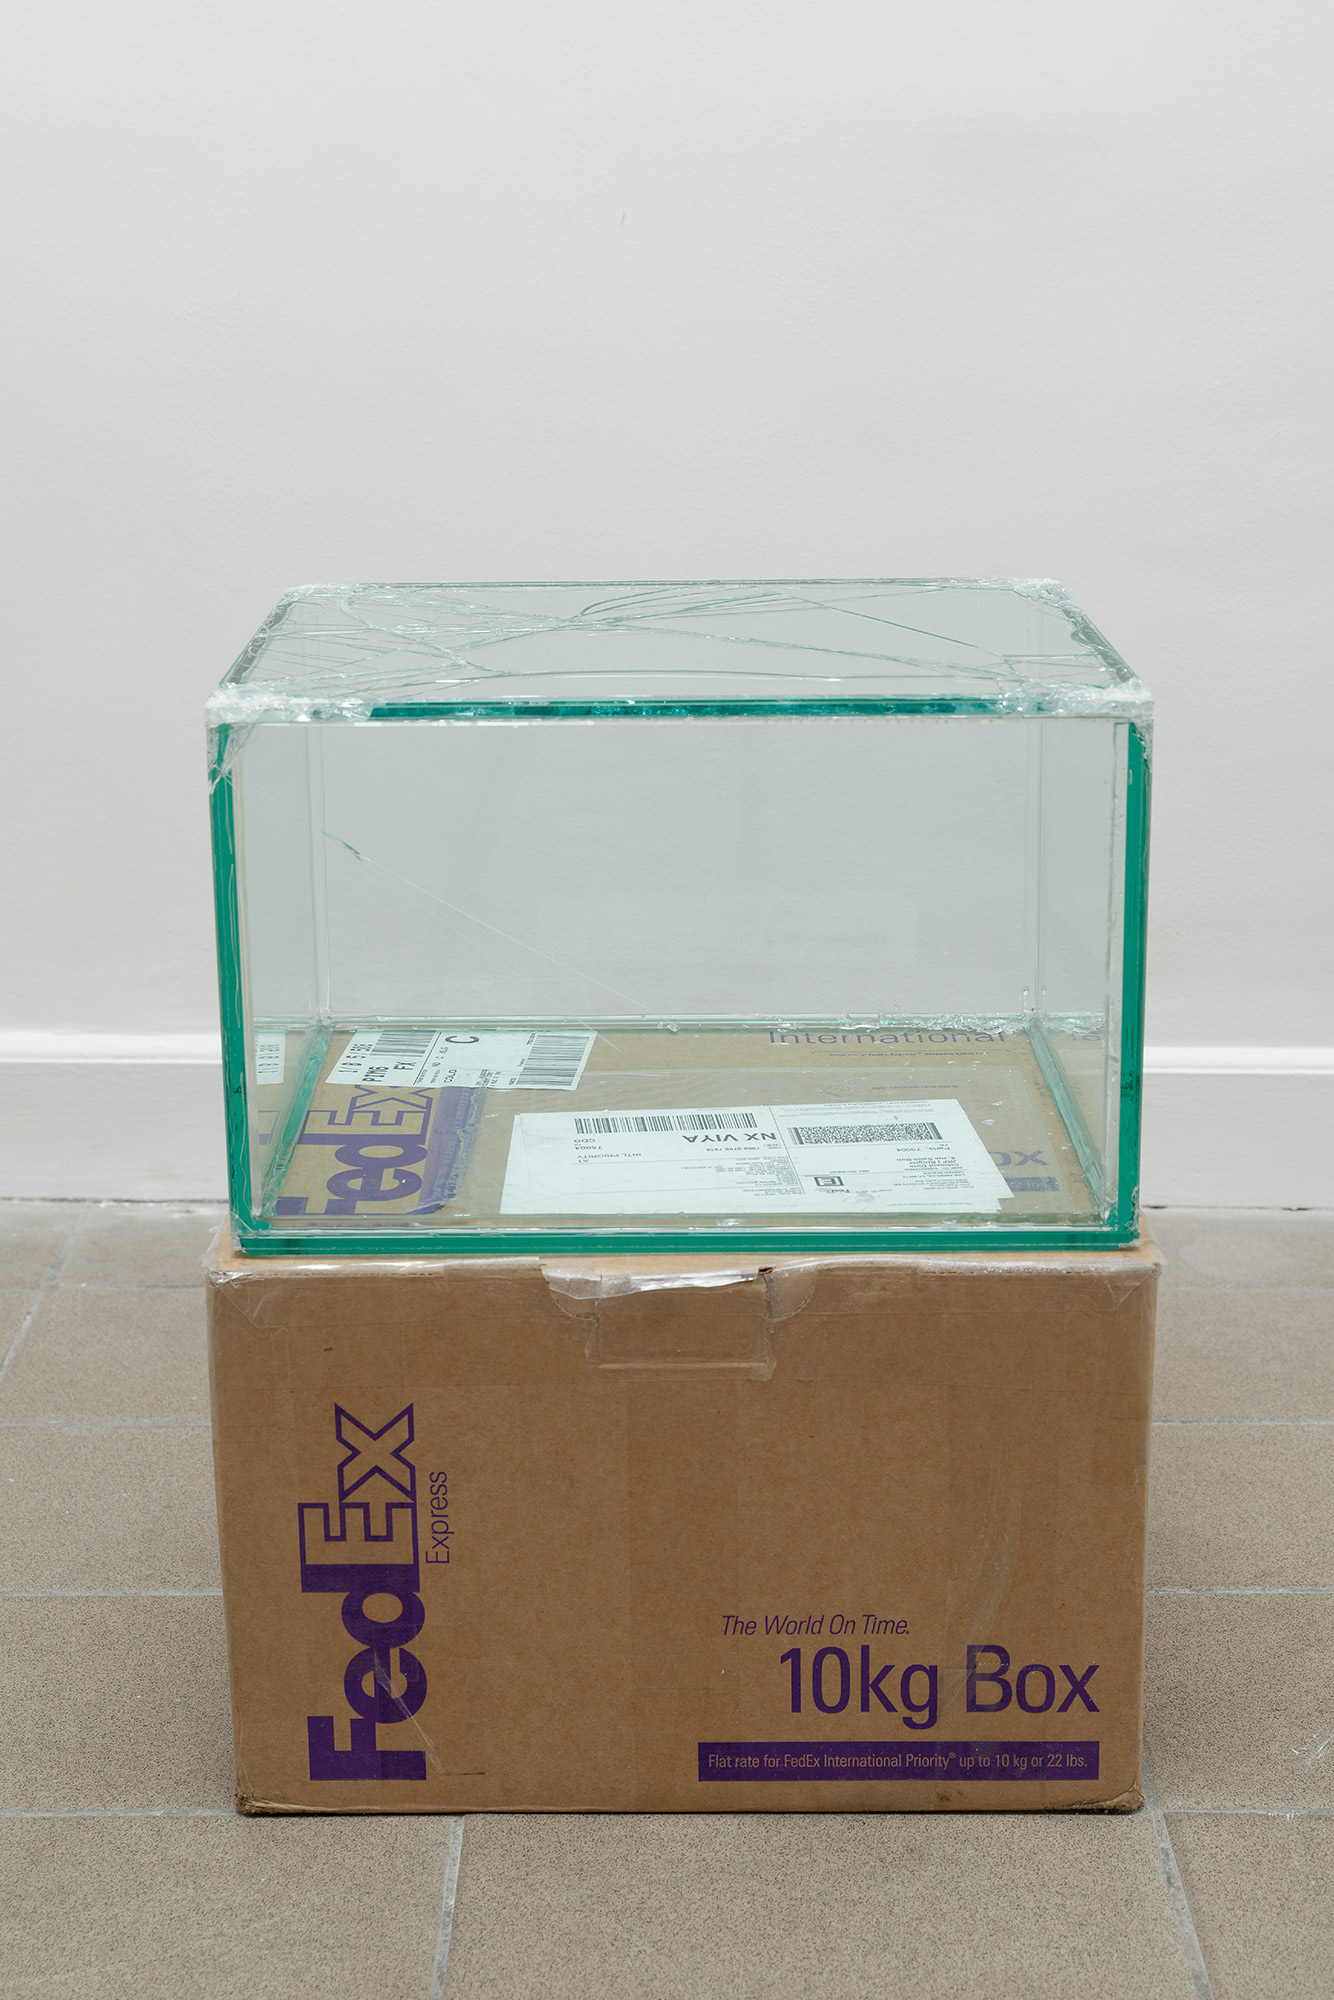 FedEx® 10kg Box  © 2006 FedEx 149801 REV 9/06 MP, International Priority, Los Angeles-Paris trk#796906988159, October 14-16, 2013    2013–   Laminated glass, FedEx shipping box, accrued FedEx shipping and tracking labels, silicone, metal, tape  10 1/2 x 16 1/4 x 13 1/4 inches   8 rue Saint-Bon, 2013